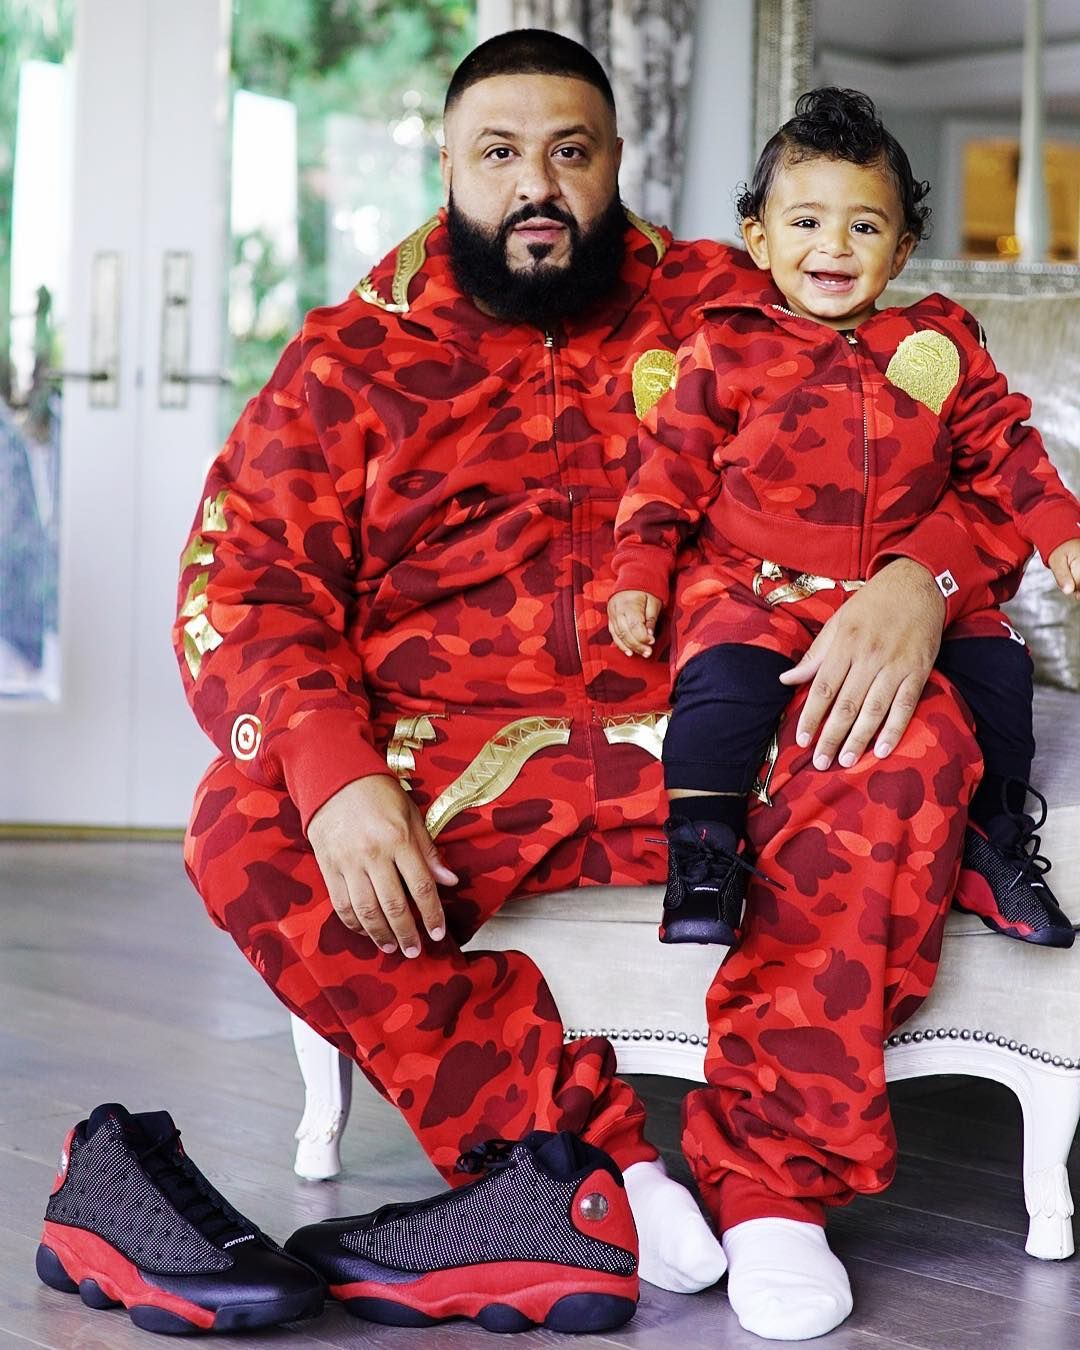 low priced adf57 859aa DJ Khaled and Asahd Rock Matching BAPE Outfits. Super Cute Mini Me Look.  Amazing Streetwear Look.  kidsfashion  streetwear  djkhaled  celebrity   cute ...